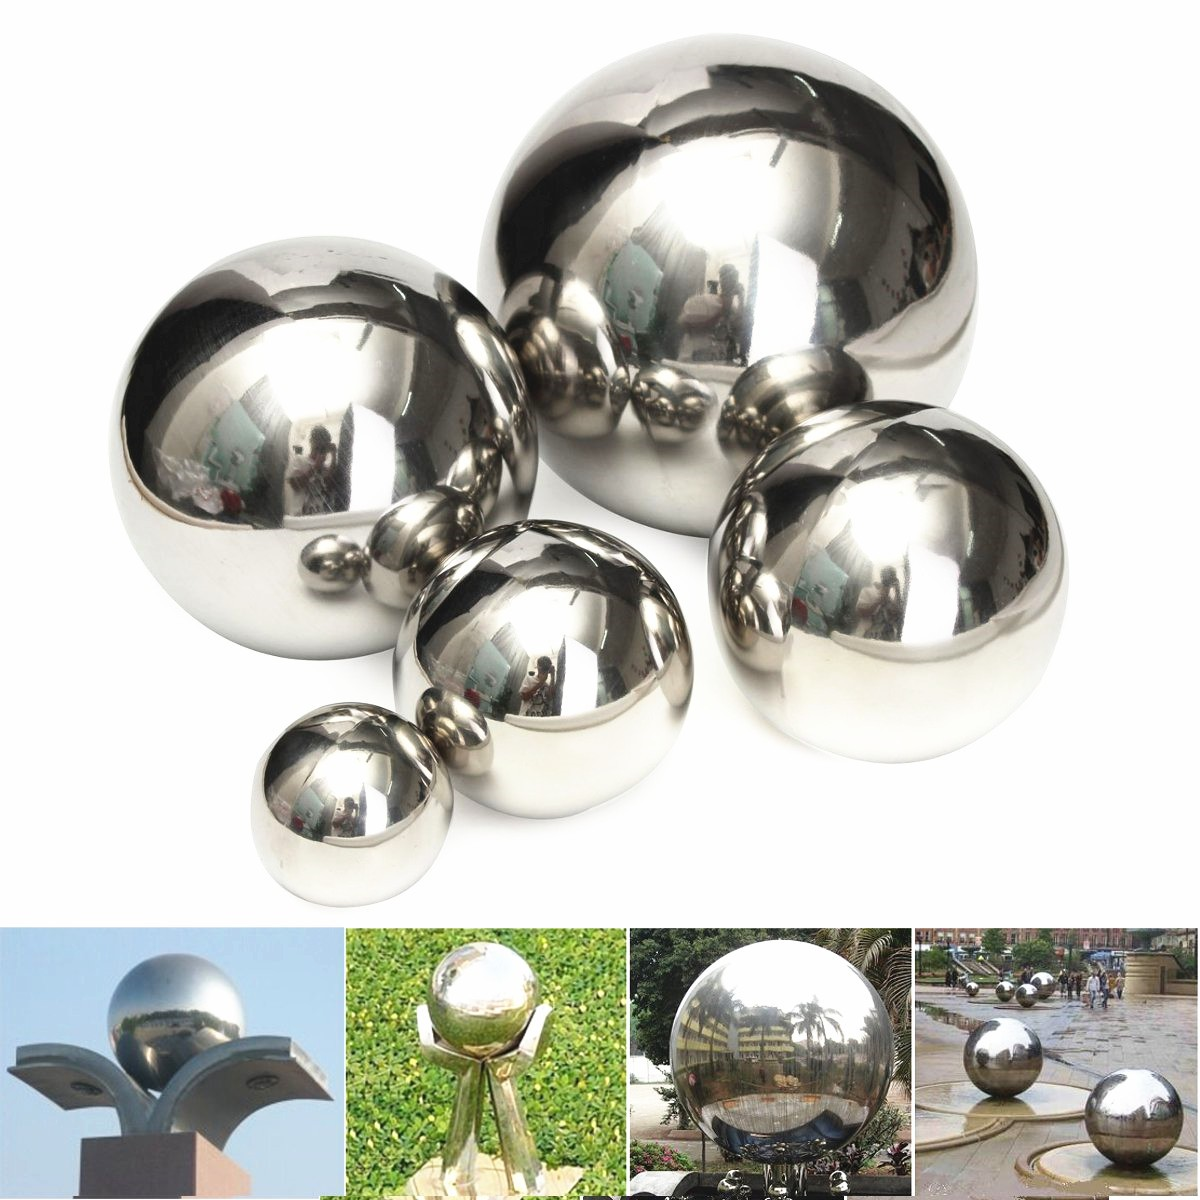 Stainless Steel Mirror Ball Polished Hollow Ball Hardware Accessories 5/8/10/12/15cm polished metal sign brushed stainless steel sign golden mirror finished metal letter